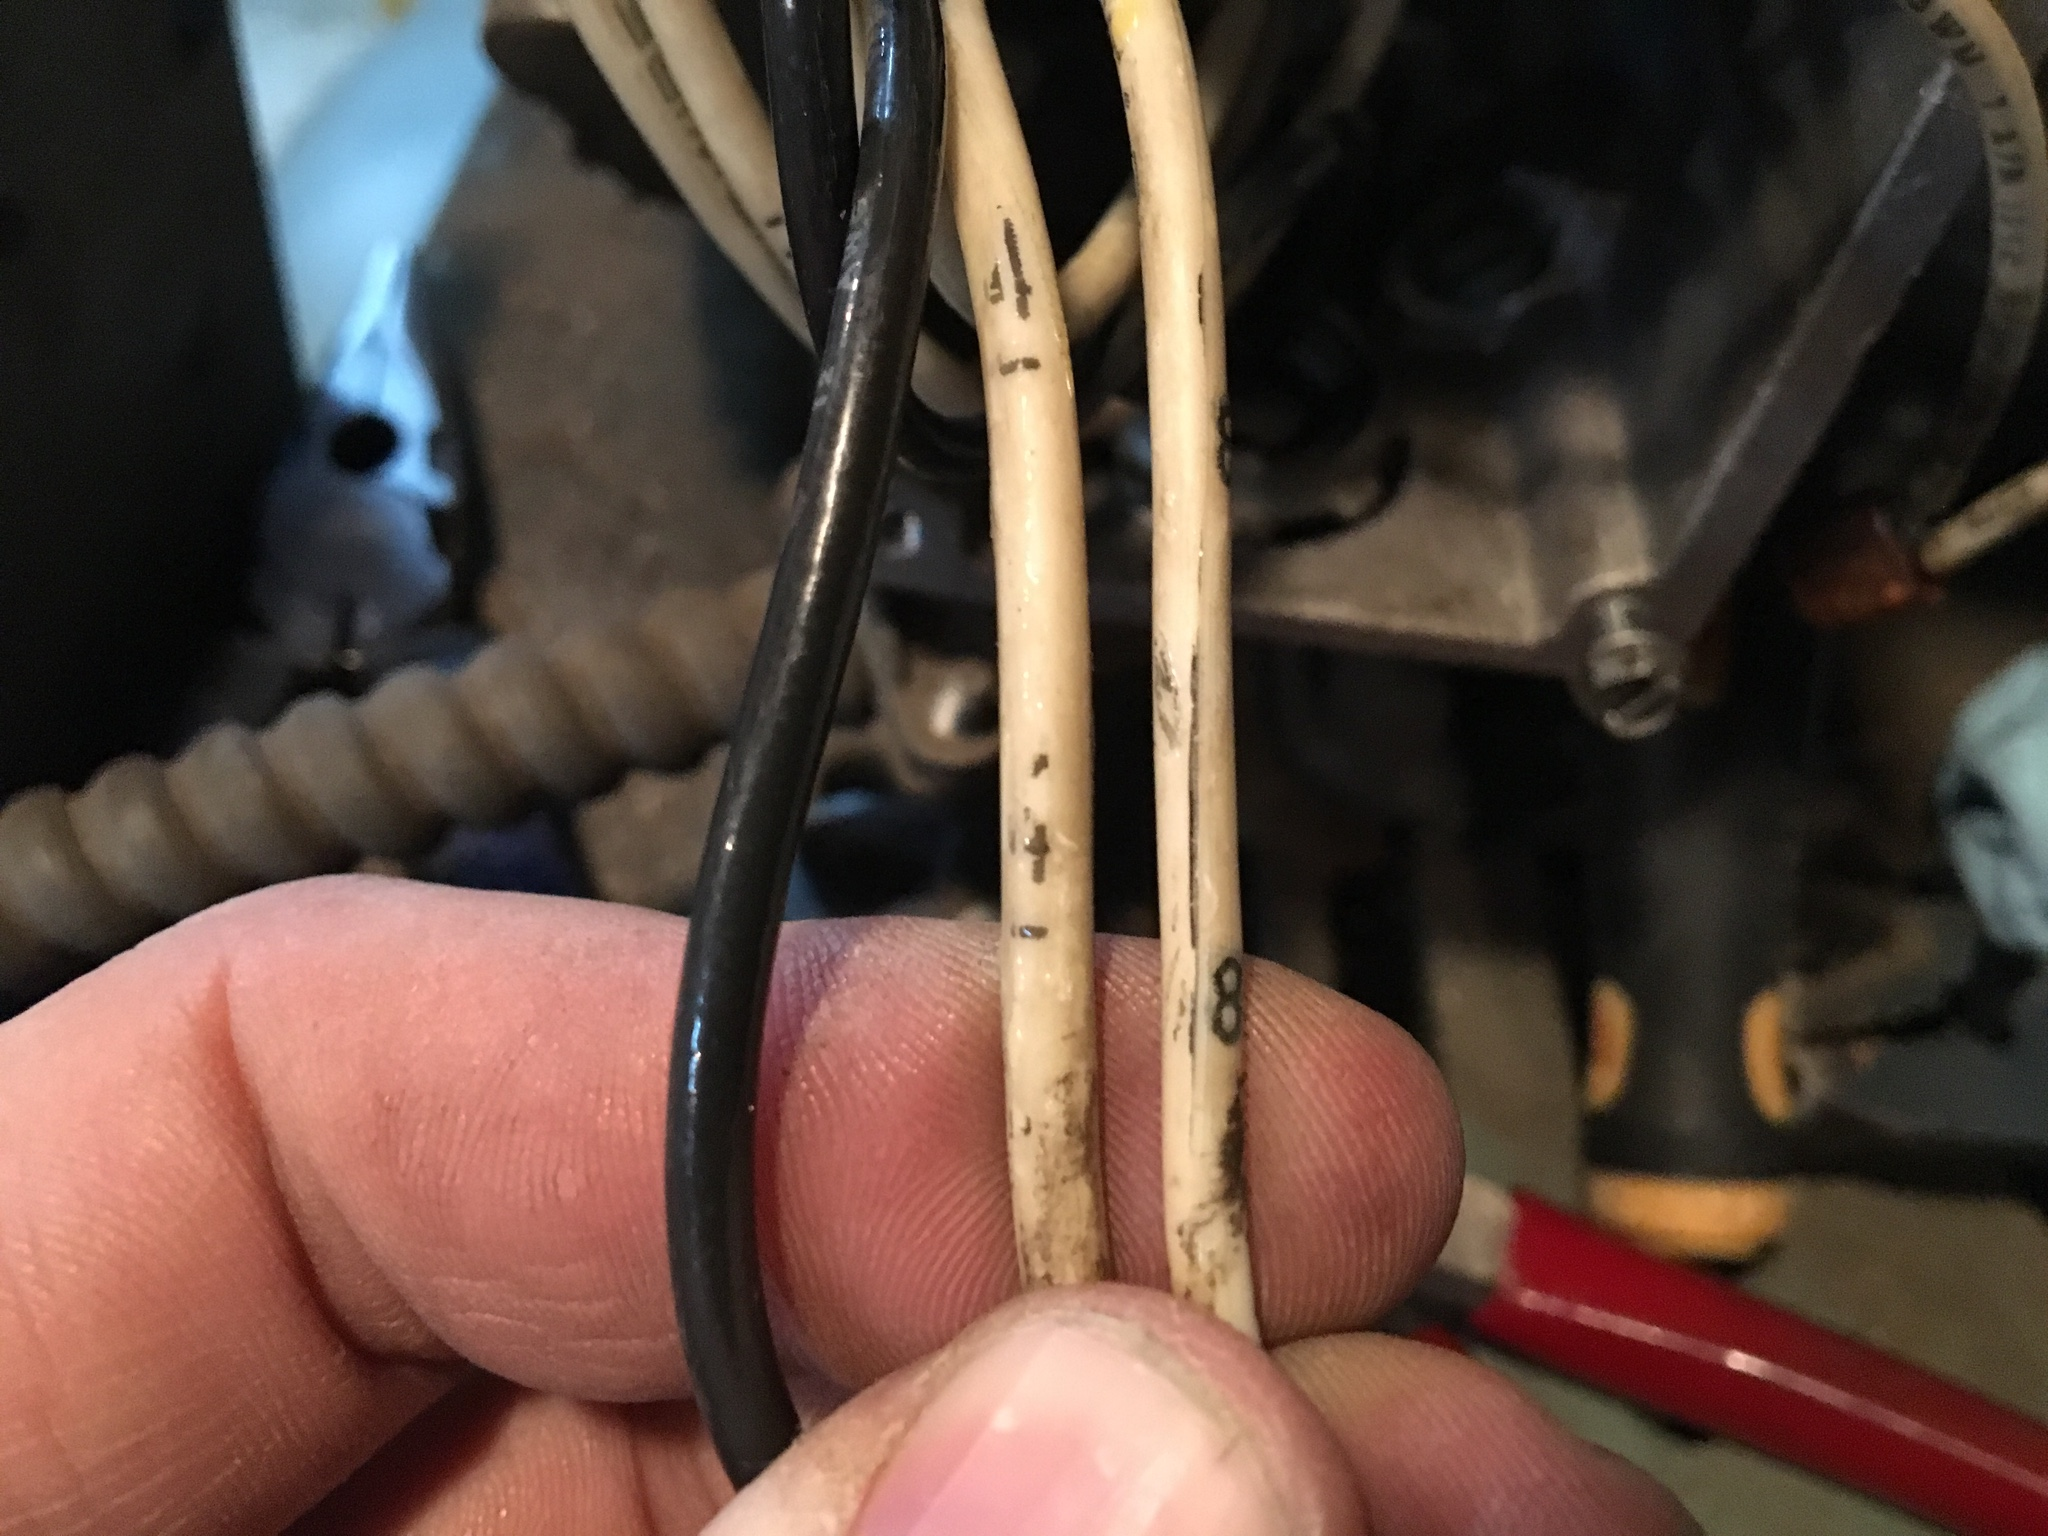 Suggestions For New To Me Saylor Beall The Garage Journal Board Wiring Diagram I Have No Idea Why Guy Would Been Messing With Wires Connected Motor When He Moved It But They Had Electrical Tape That Was Fairly